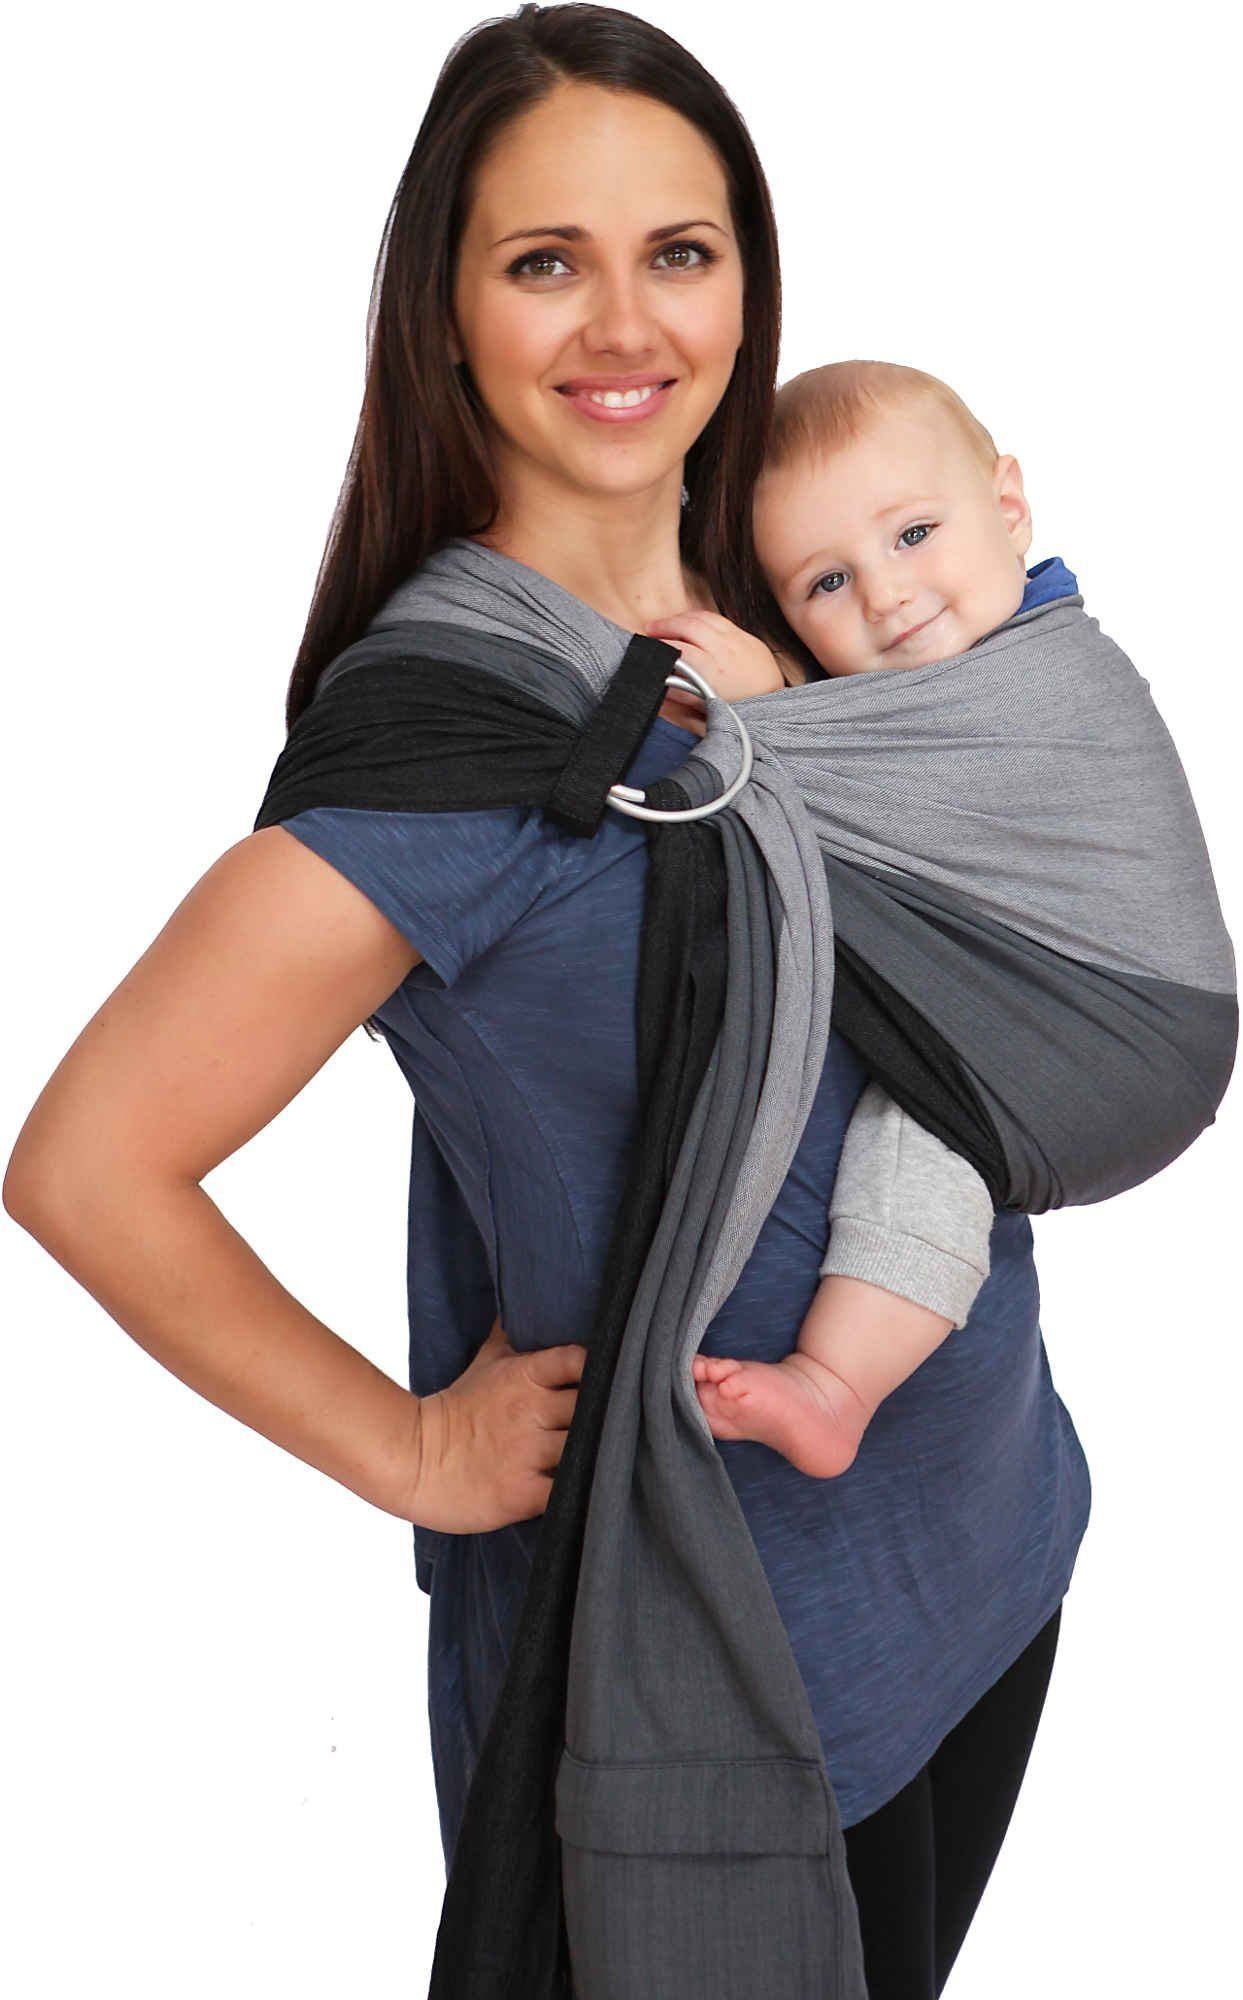 83d9b430d5b Maya Wrap ComfortFit Ring Sling   Baby Carrier - Asher - Medium. Asher is a